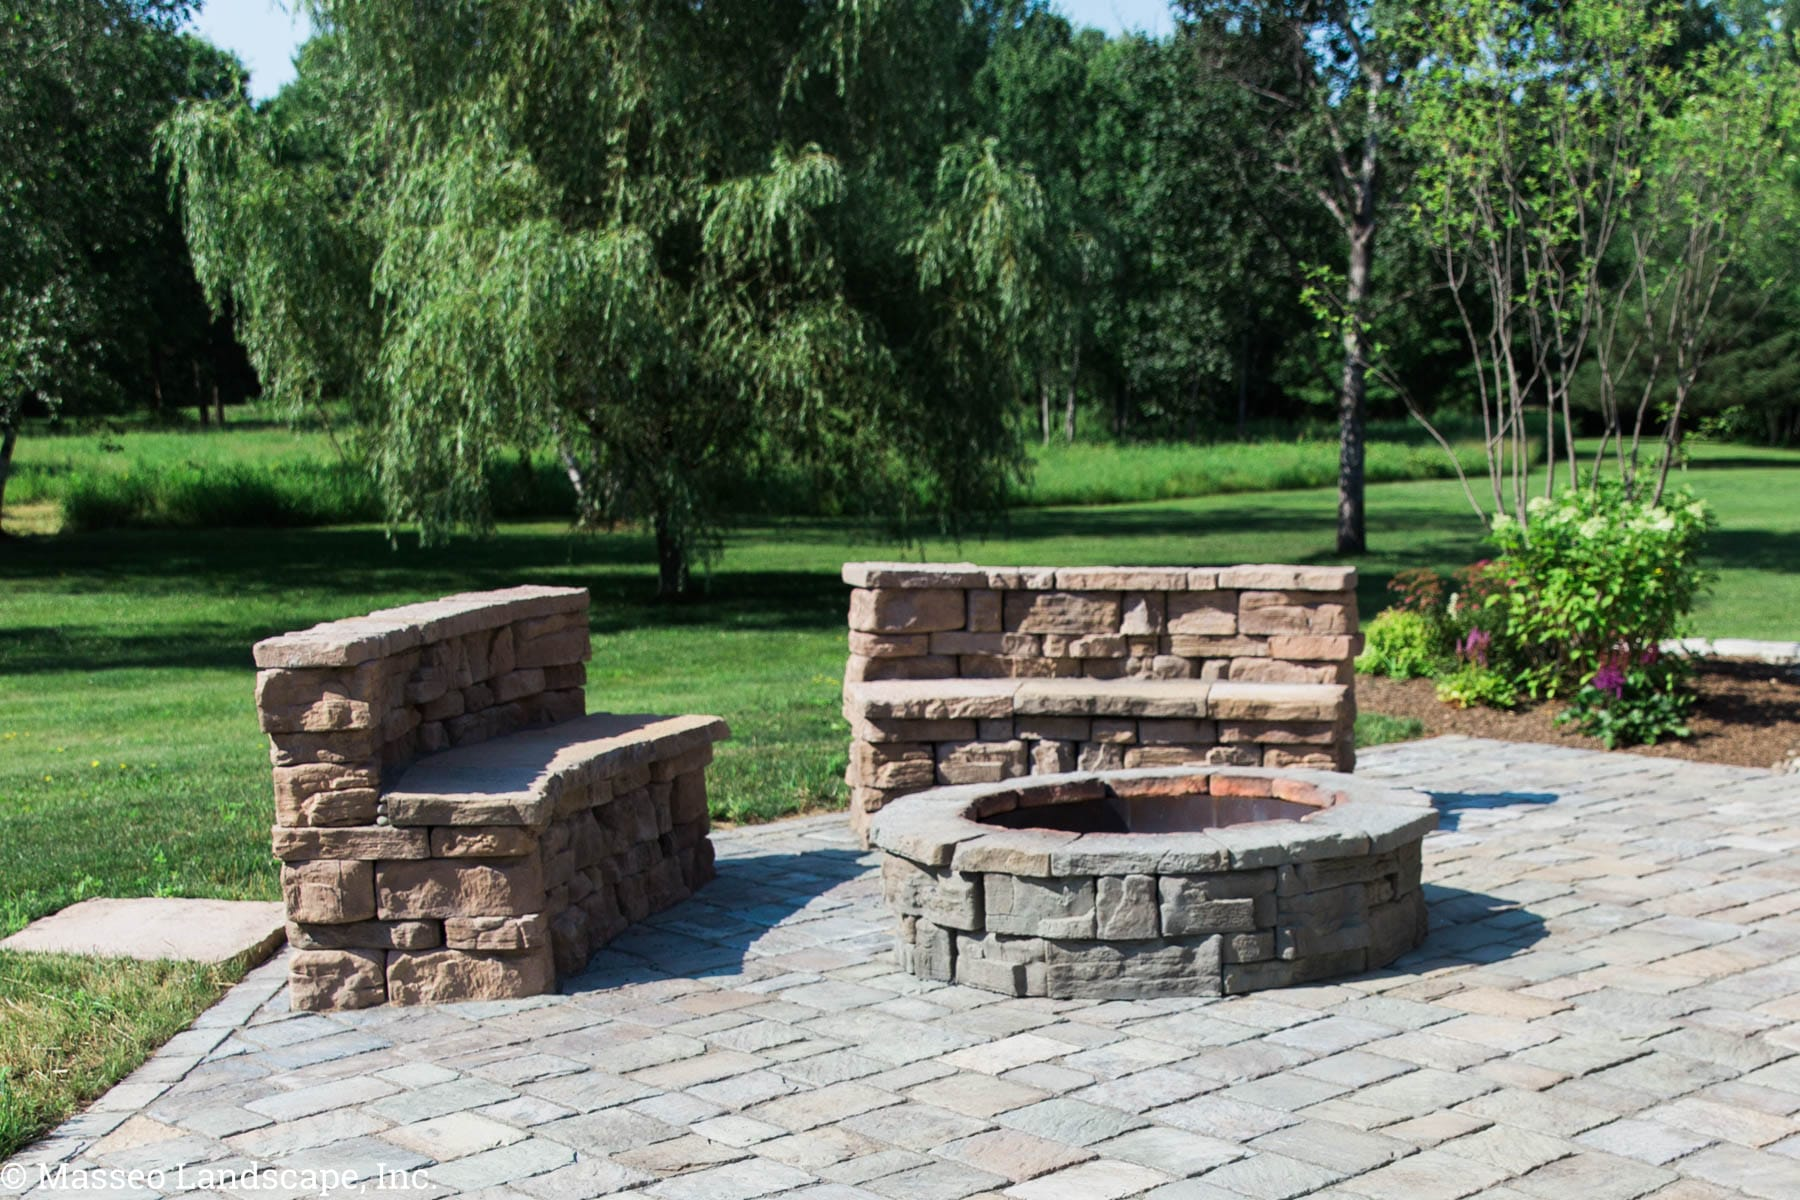 Rosetta wallstone repurposed as built-in seating around a round fire pit, designed and custom-built by Masseo Landscape, Inc.